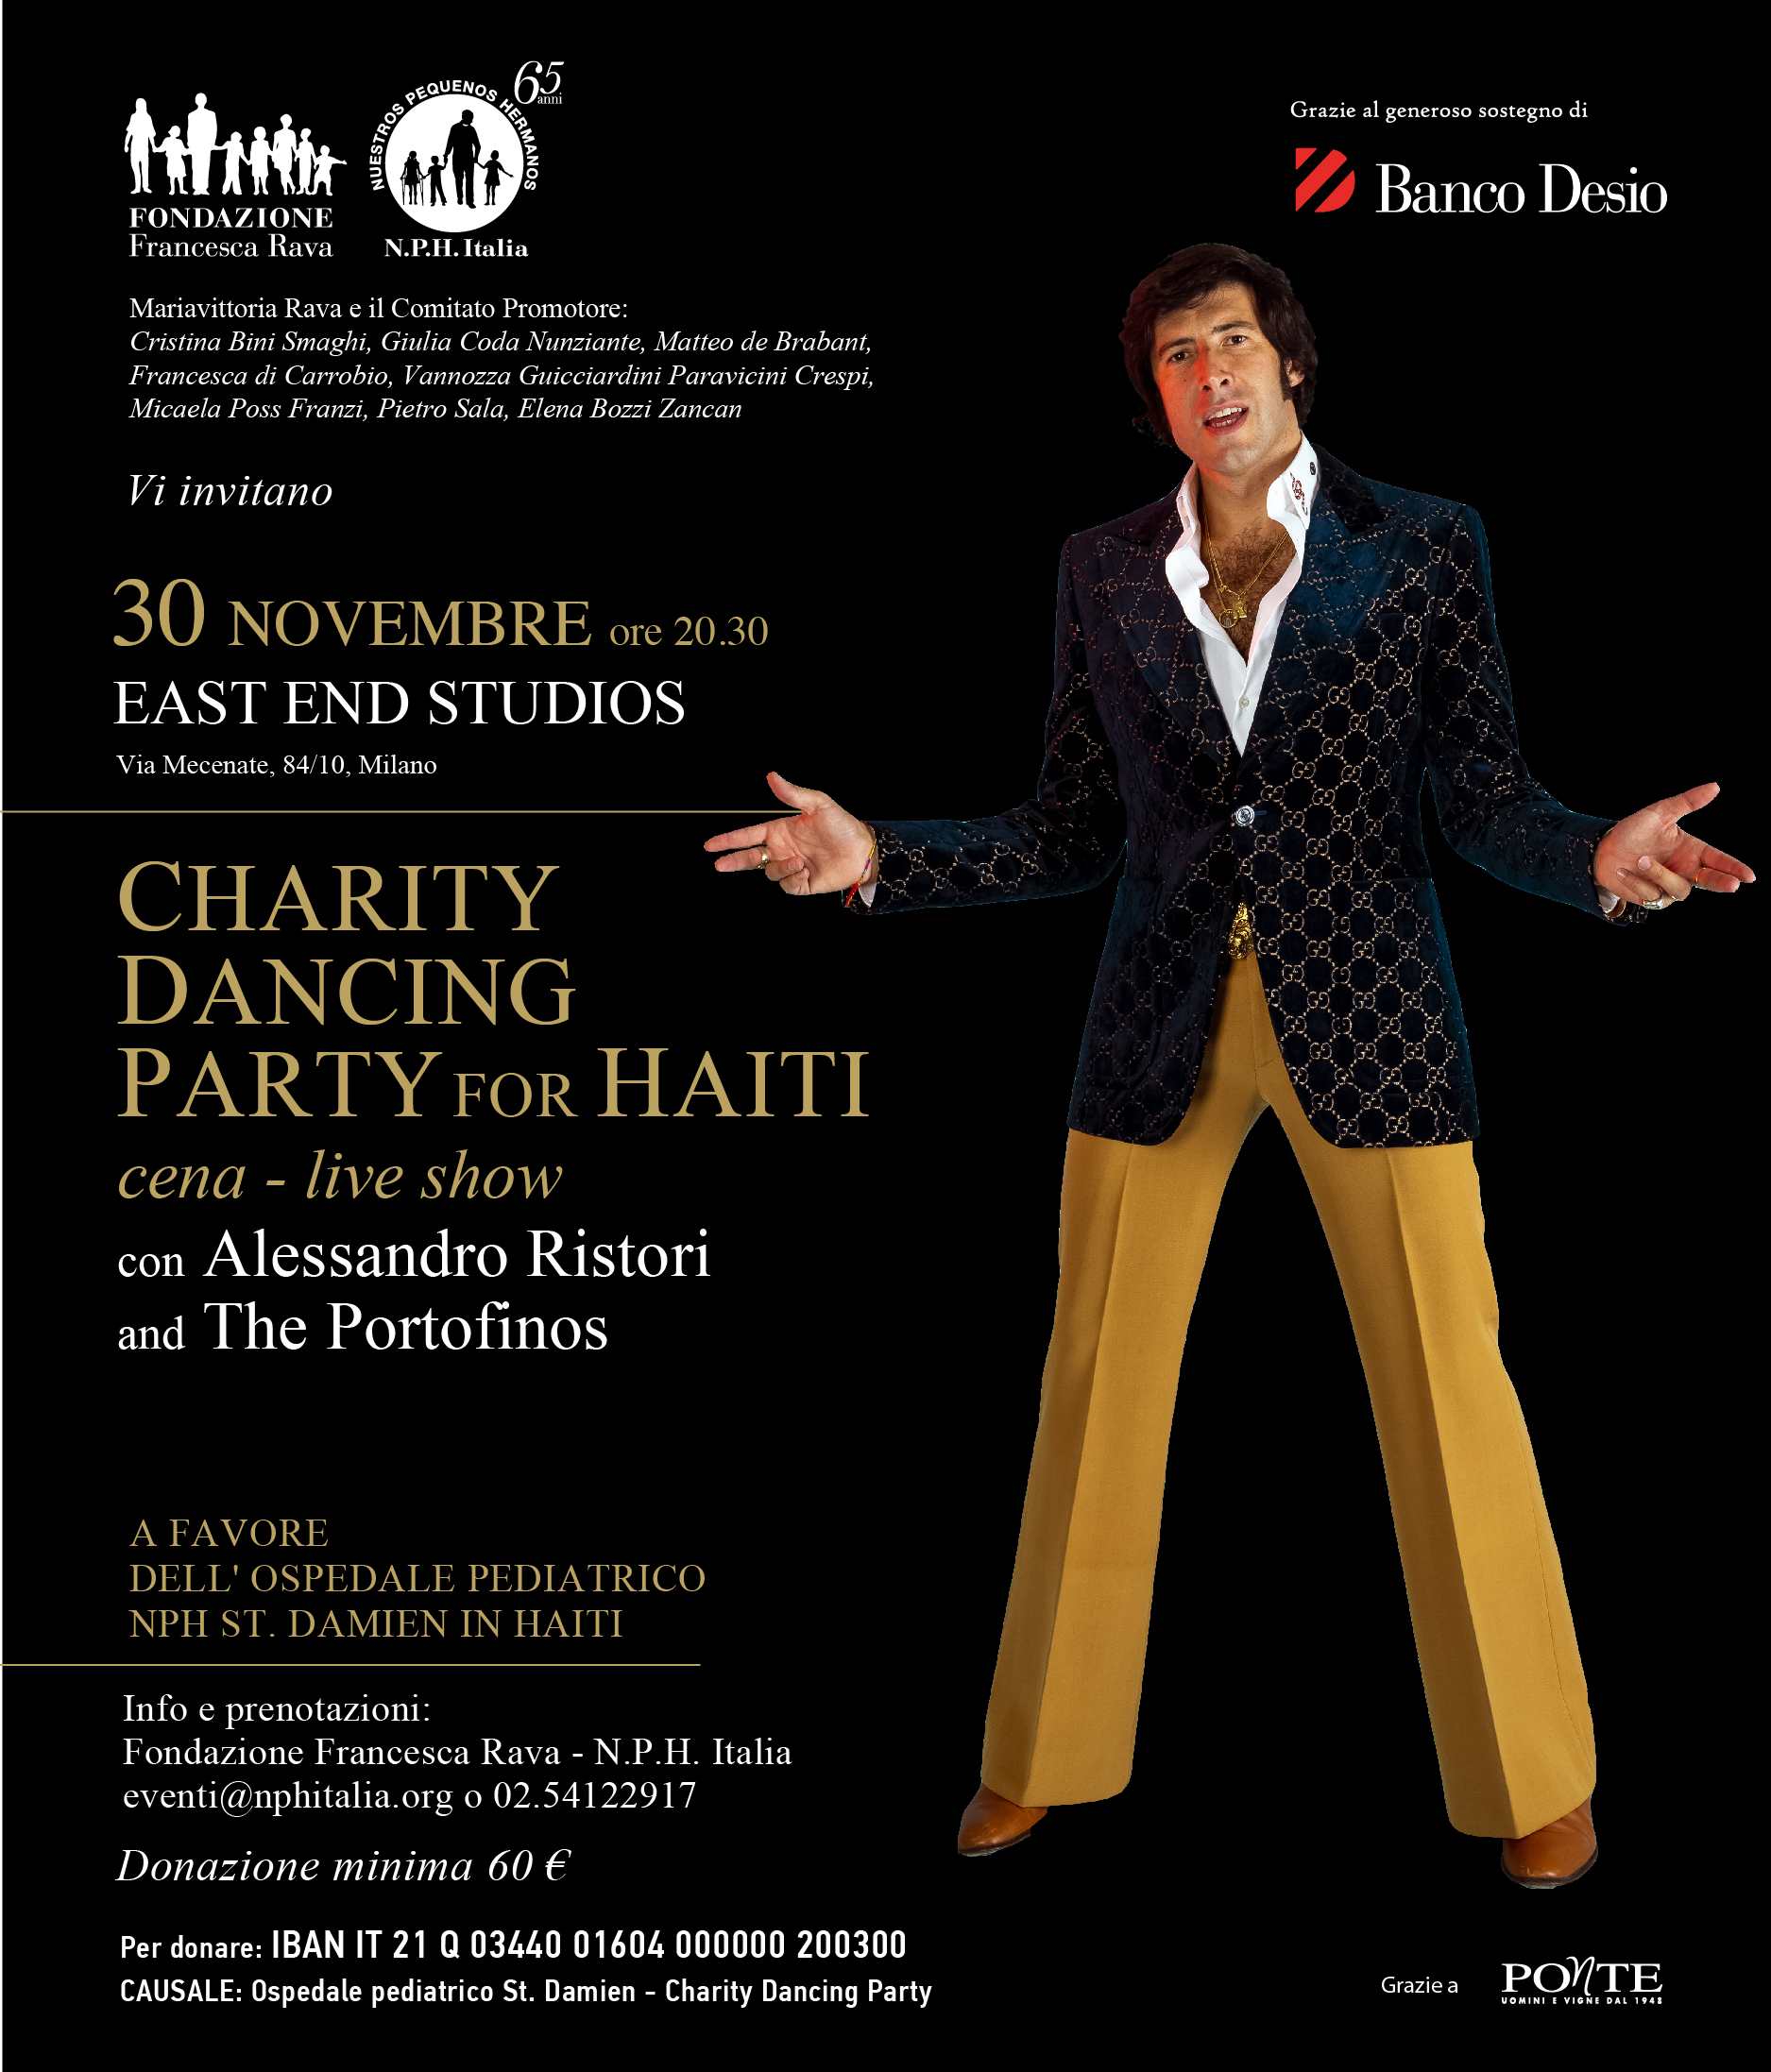 30 novembre, ore 20.30, Charity Dancing Party for Haiti agli East End Studios con Alessandro Ristori e The Portofinos!